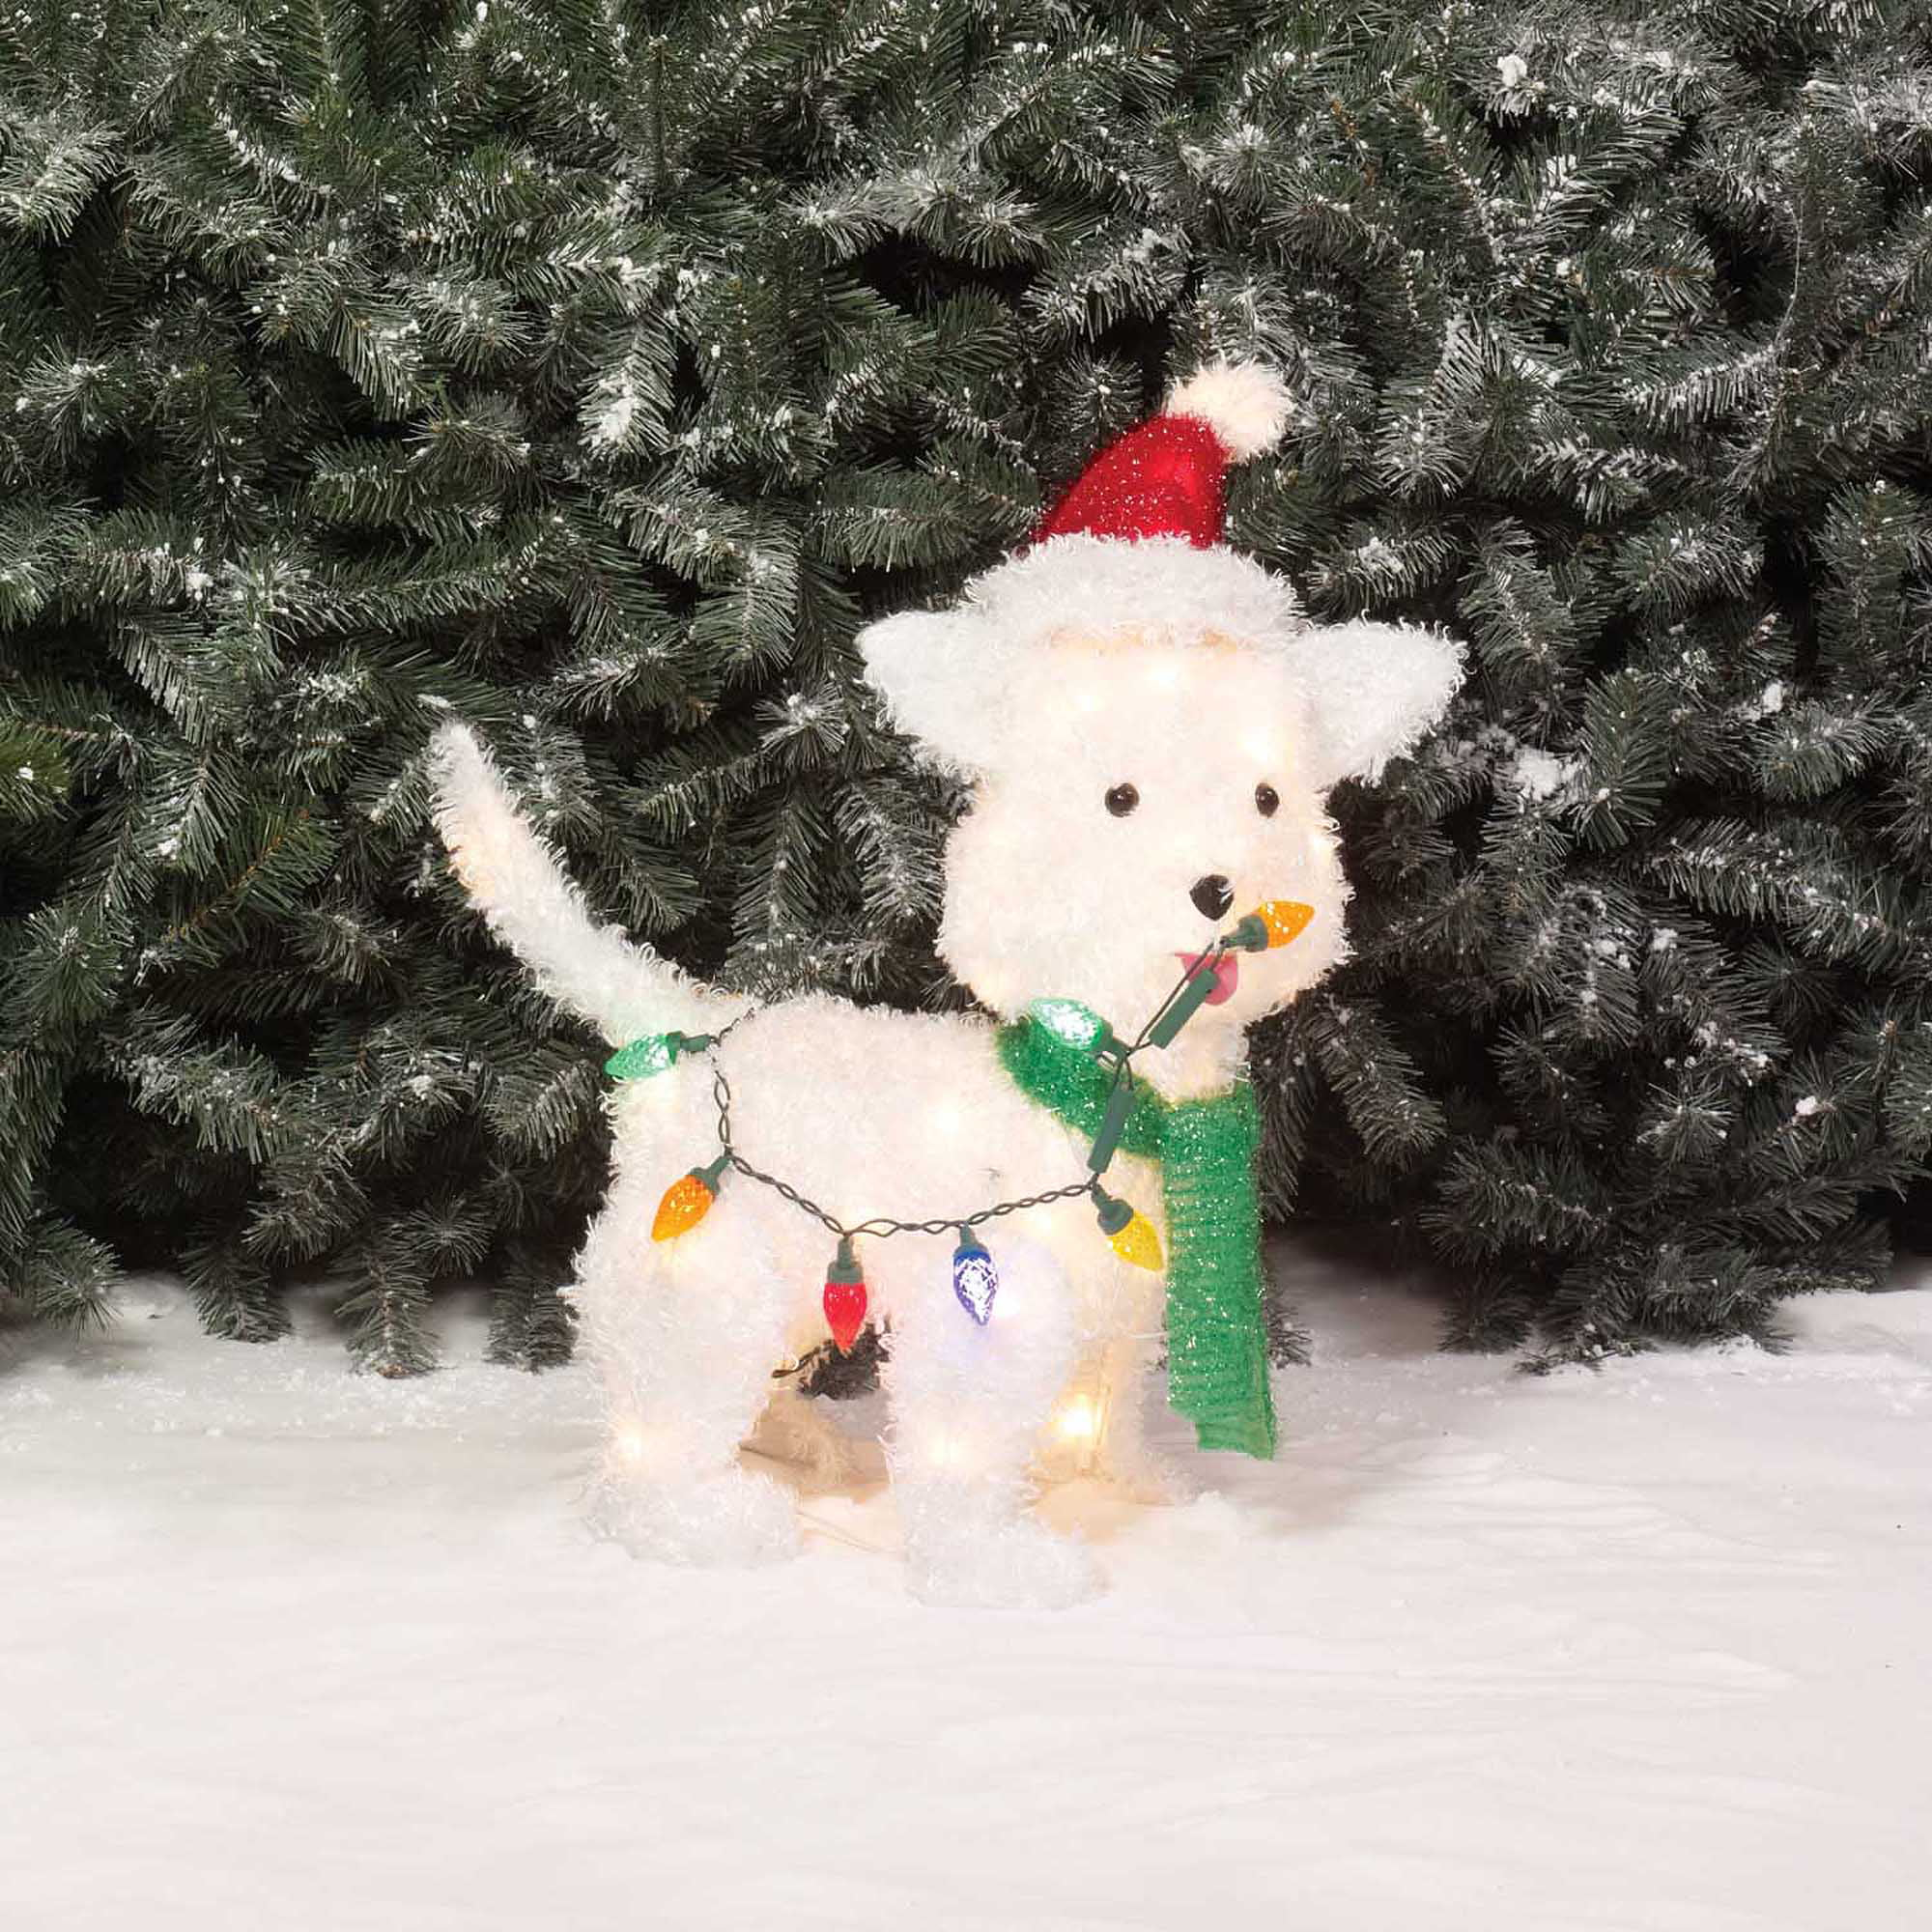 holiday time christmas decor 24 fluffy dog light sculpture walmartcom - Walmart Outdoor Christmas Decorations